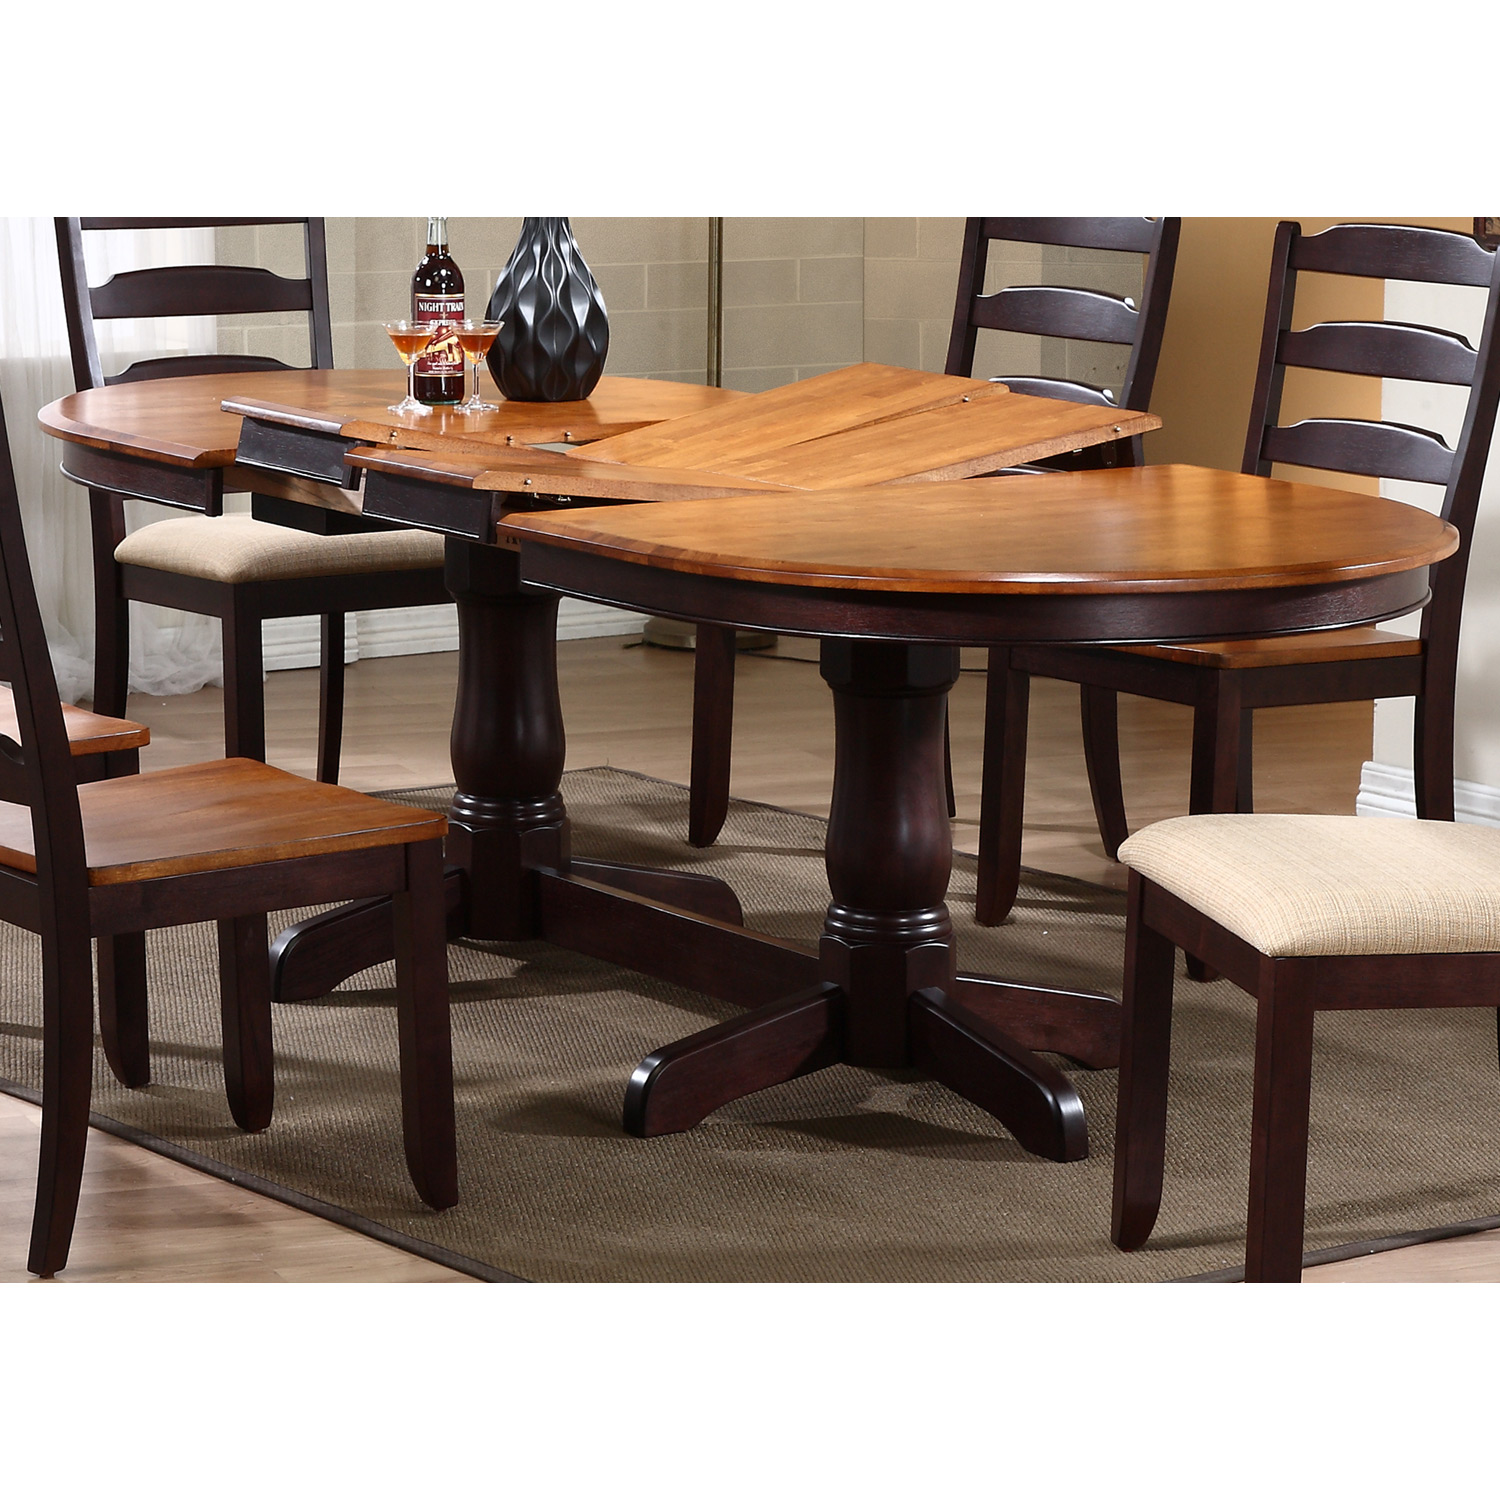 Gatsby 7 piece oval extending dining set ladder back for Oval back dining room chairs